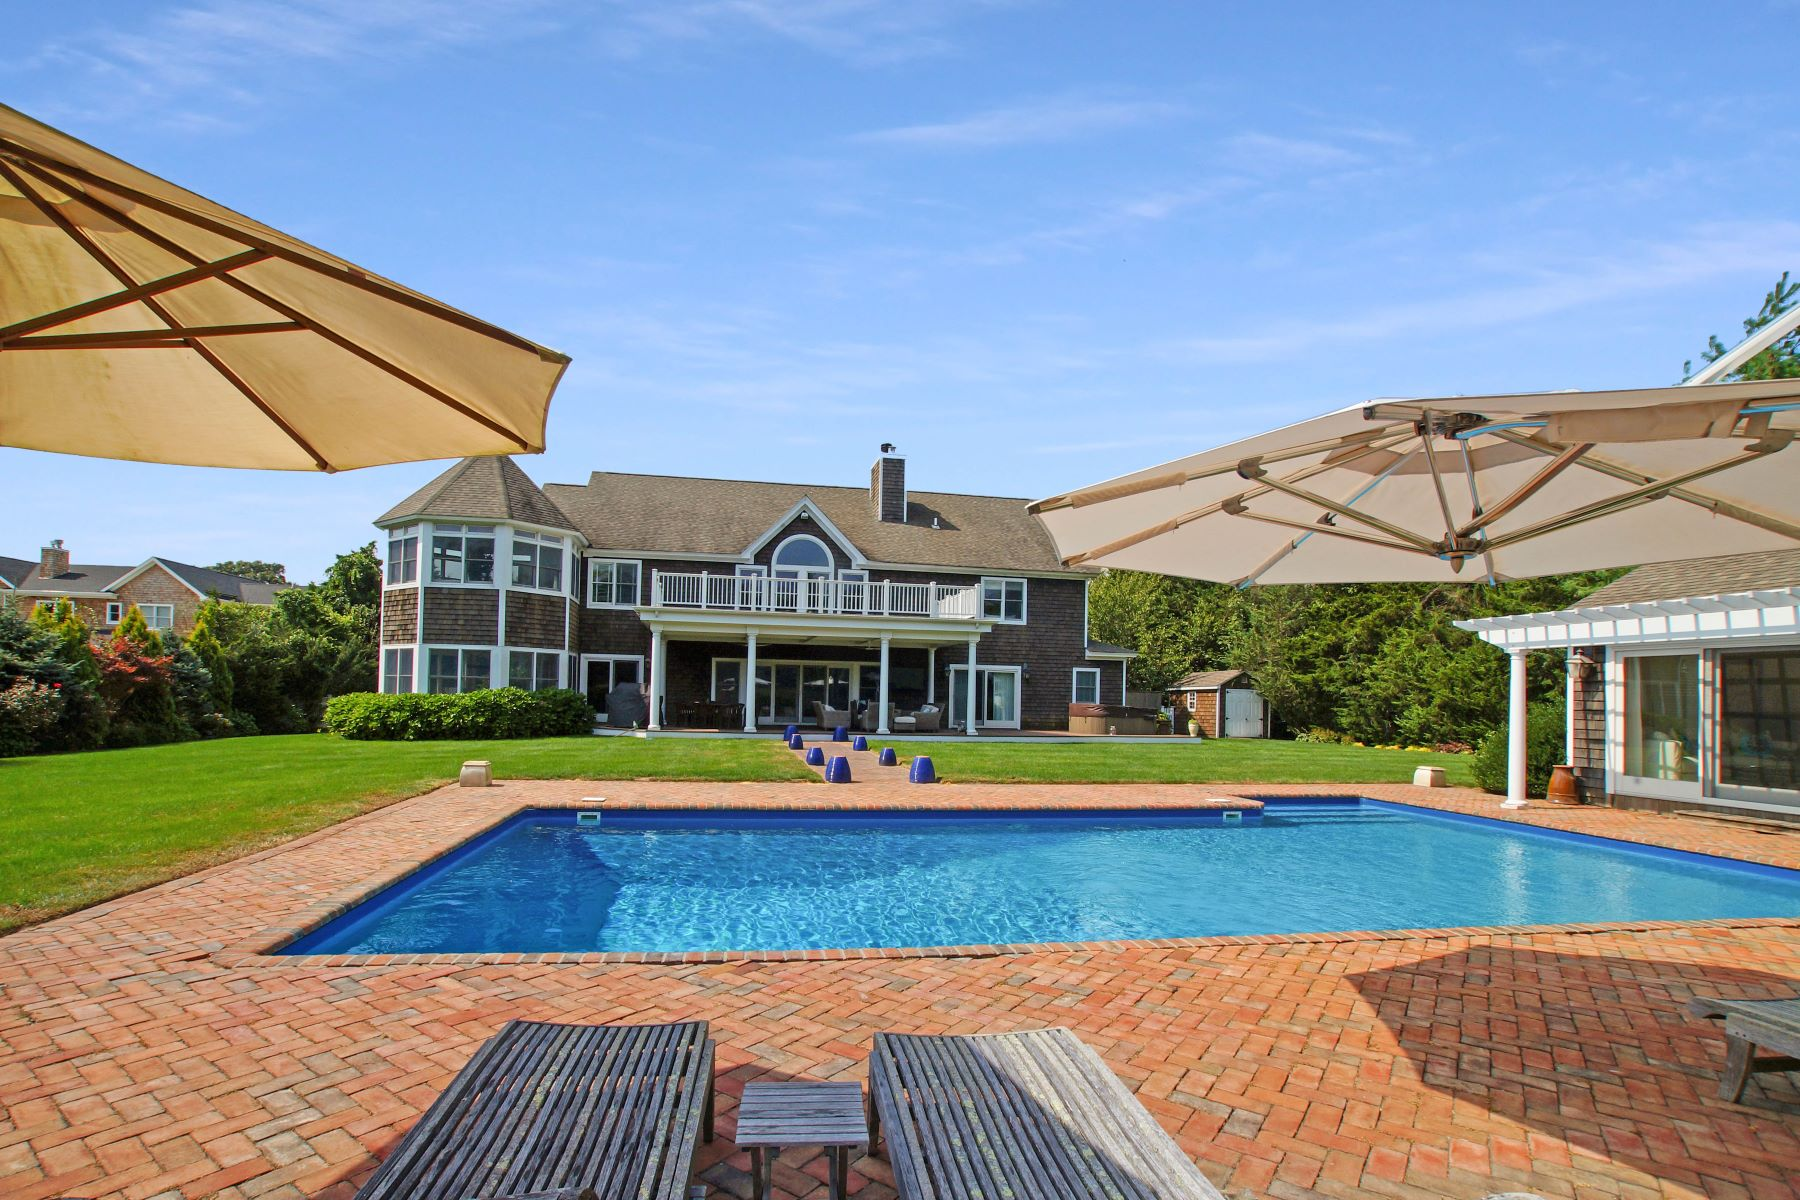 Single Family Homes for Active at Quogue 24 Old Main Road Quogue, New York 11959 United States